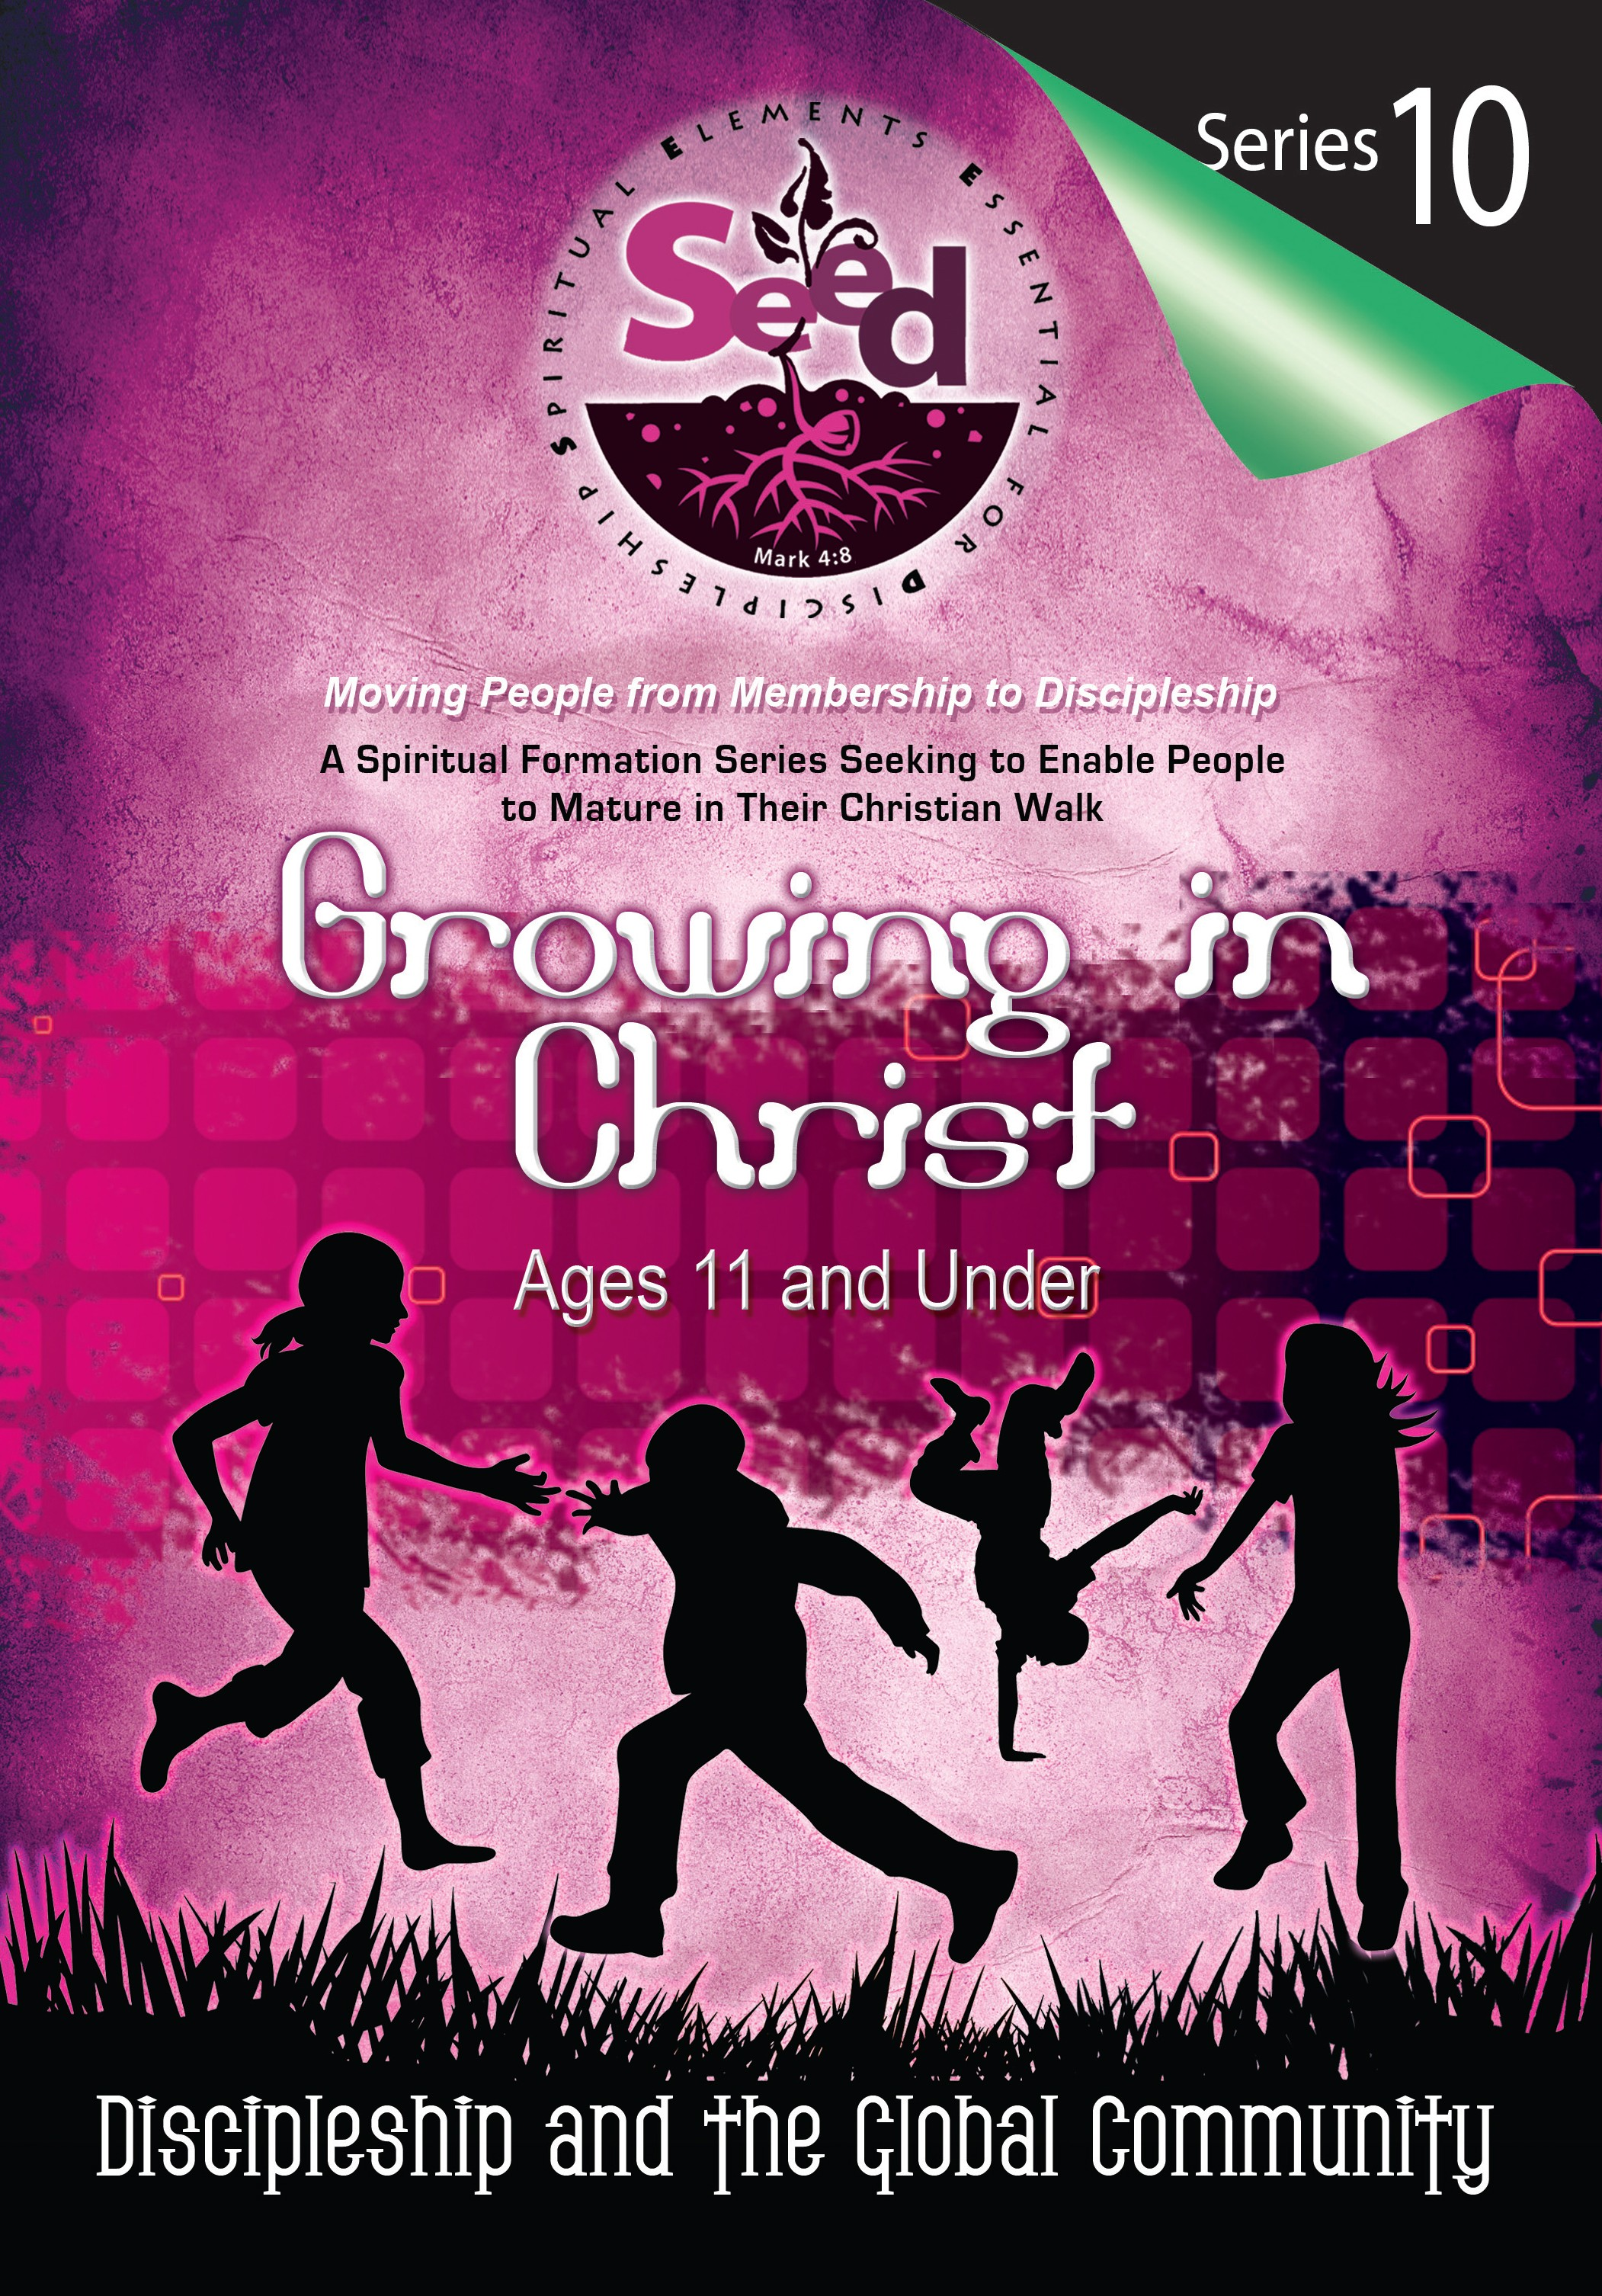 SEED Growing in Christ (Ages 11 and Under): Series 10: Discipleship and the Global Community